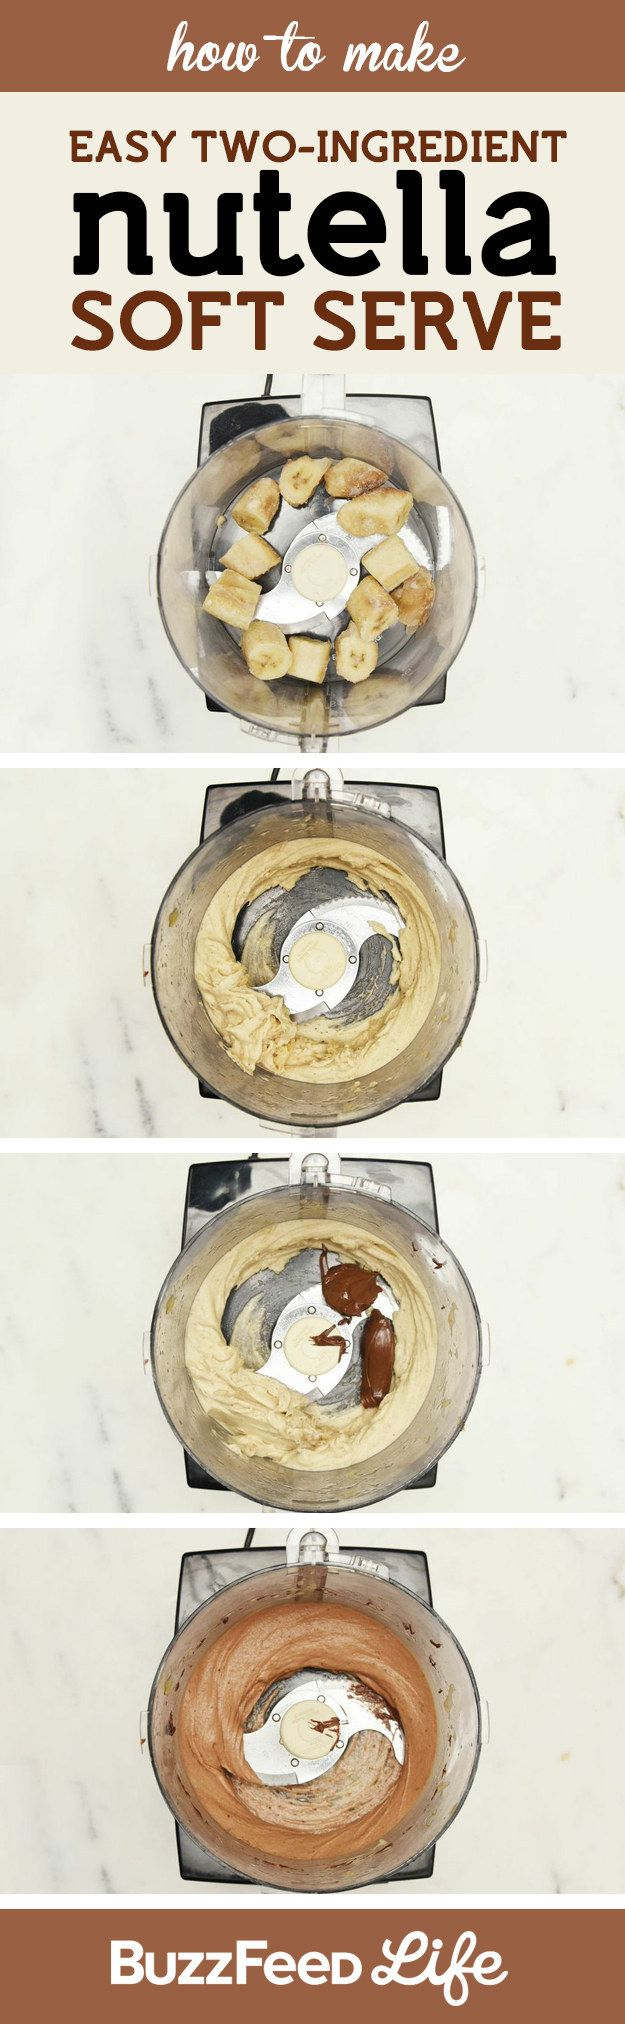 Easiest DIY soft serve ever: Just pulse frozen bananas + Nutella in a food processor.